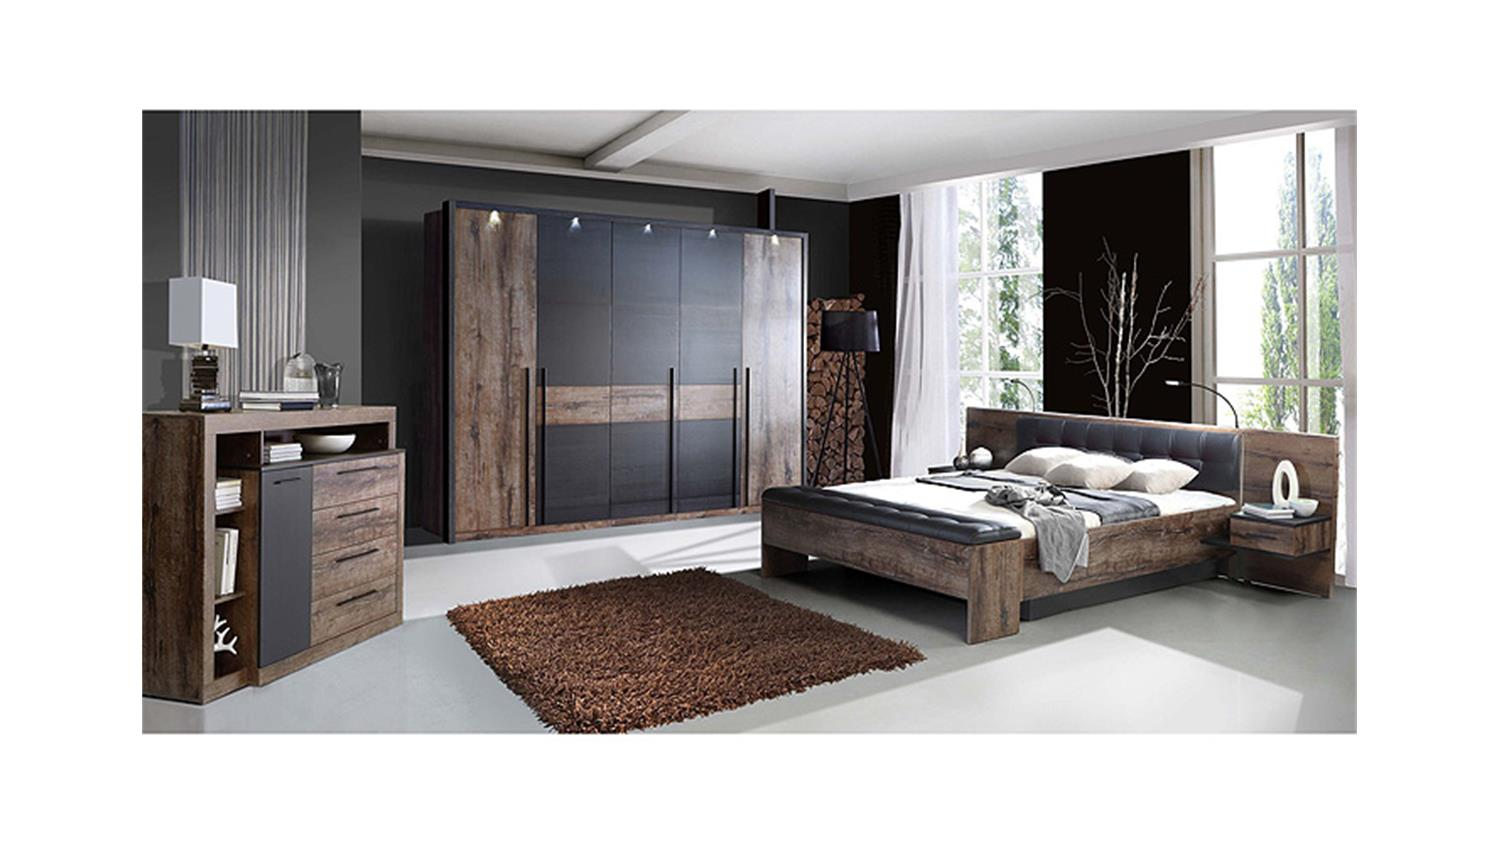 schlafzimmerset 2 bellevue schwarzeiche und schlammeiche. Black Bedroom Furniture Sets. Home Design Ideas